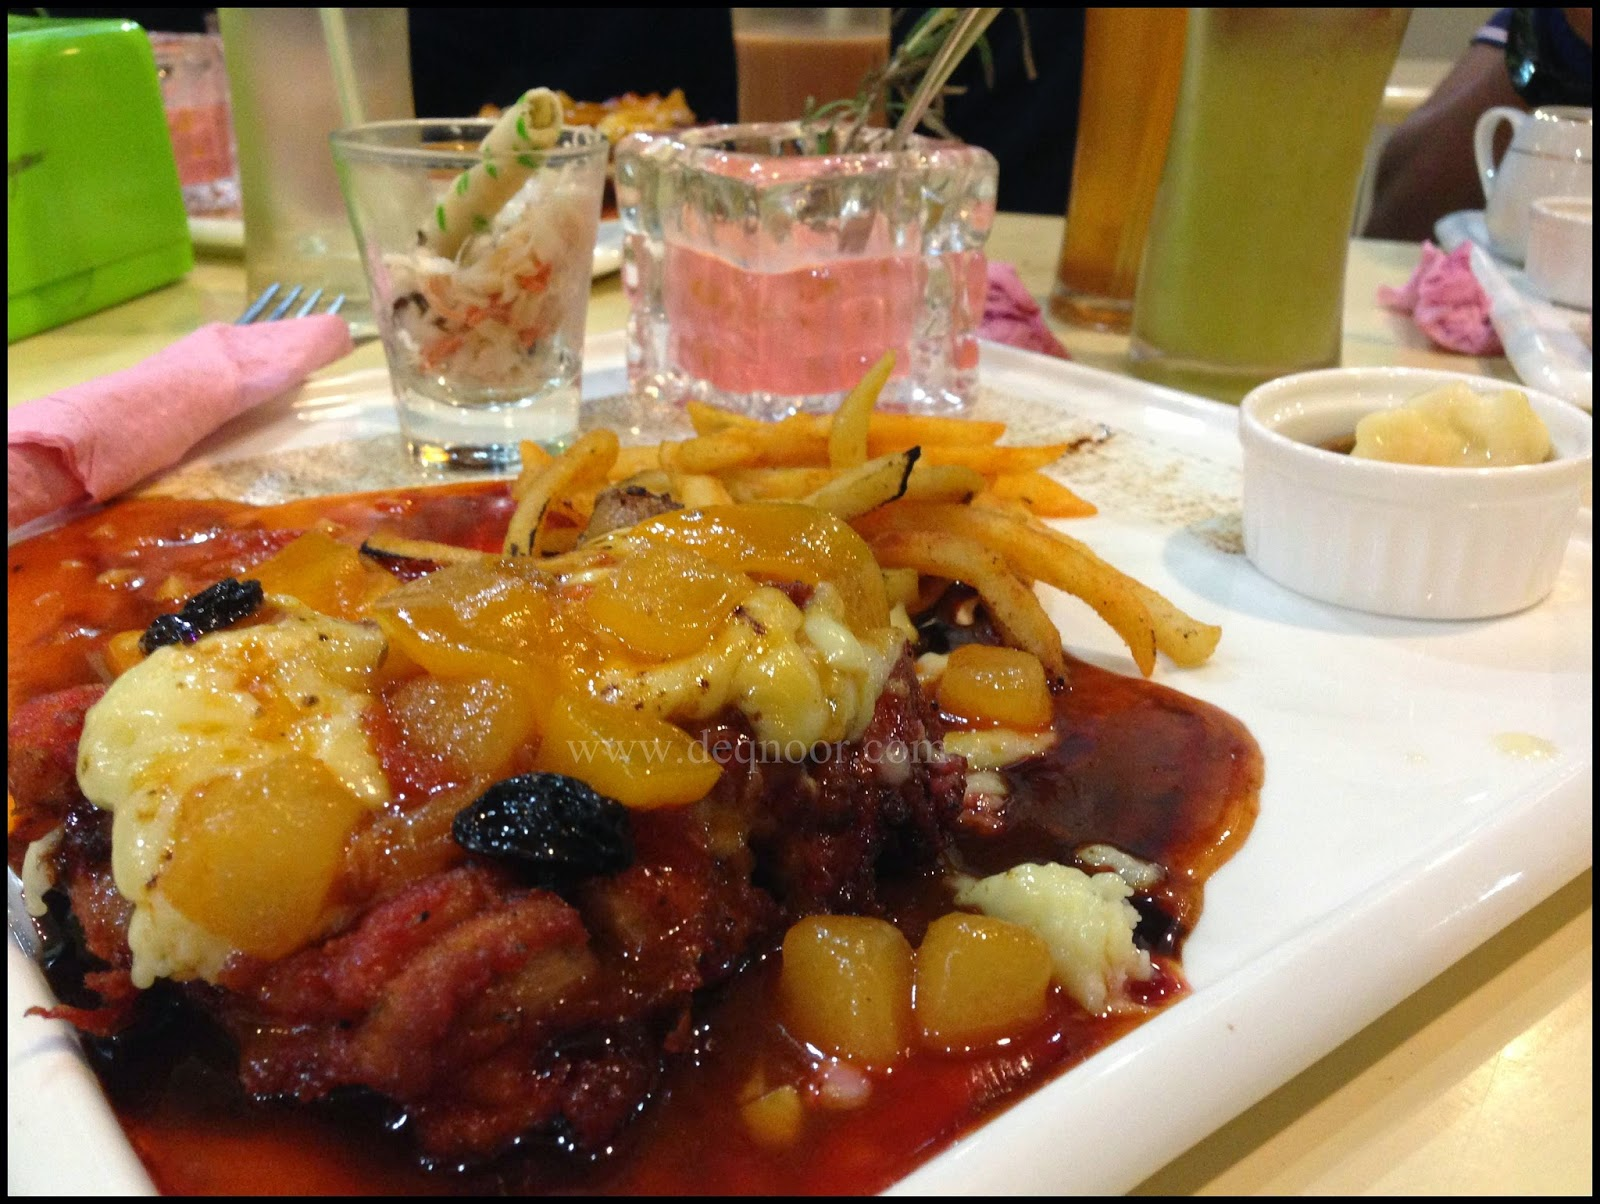 Sweet Strawberry Chocolate Cheese Chicken Chop with Ratatouille Sauce RM25.00